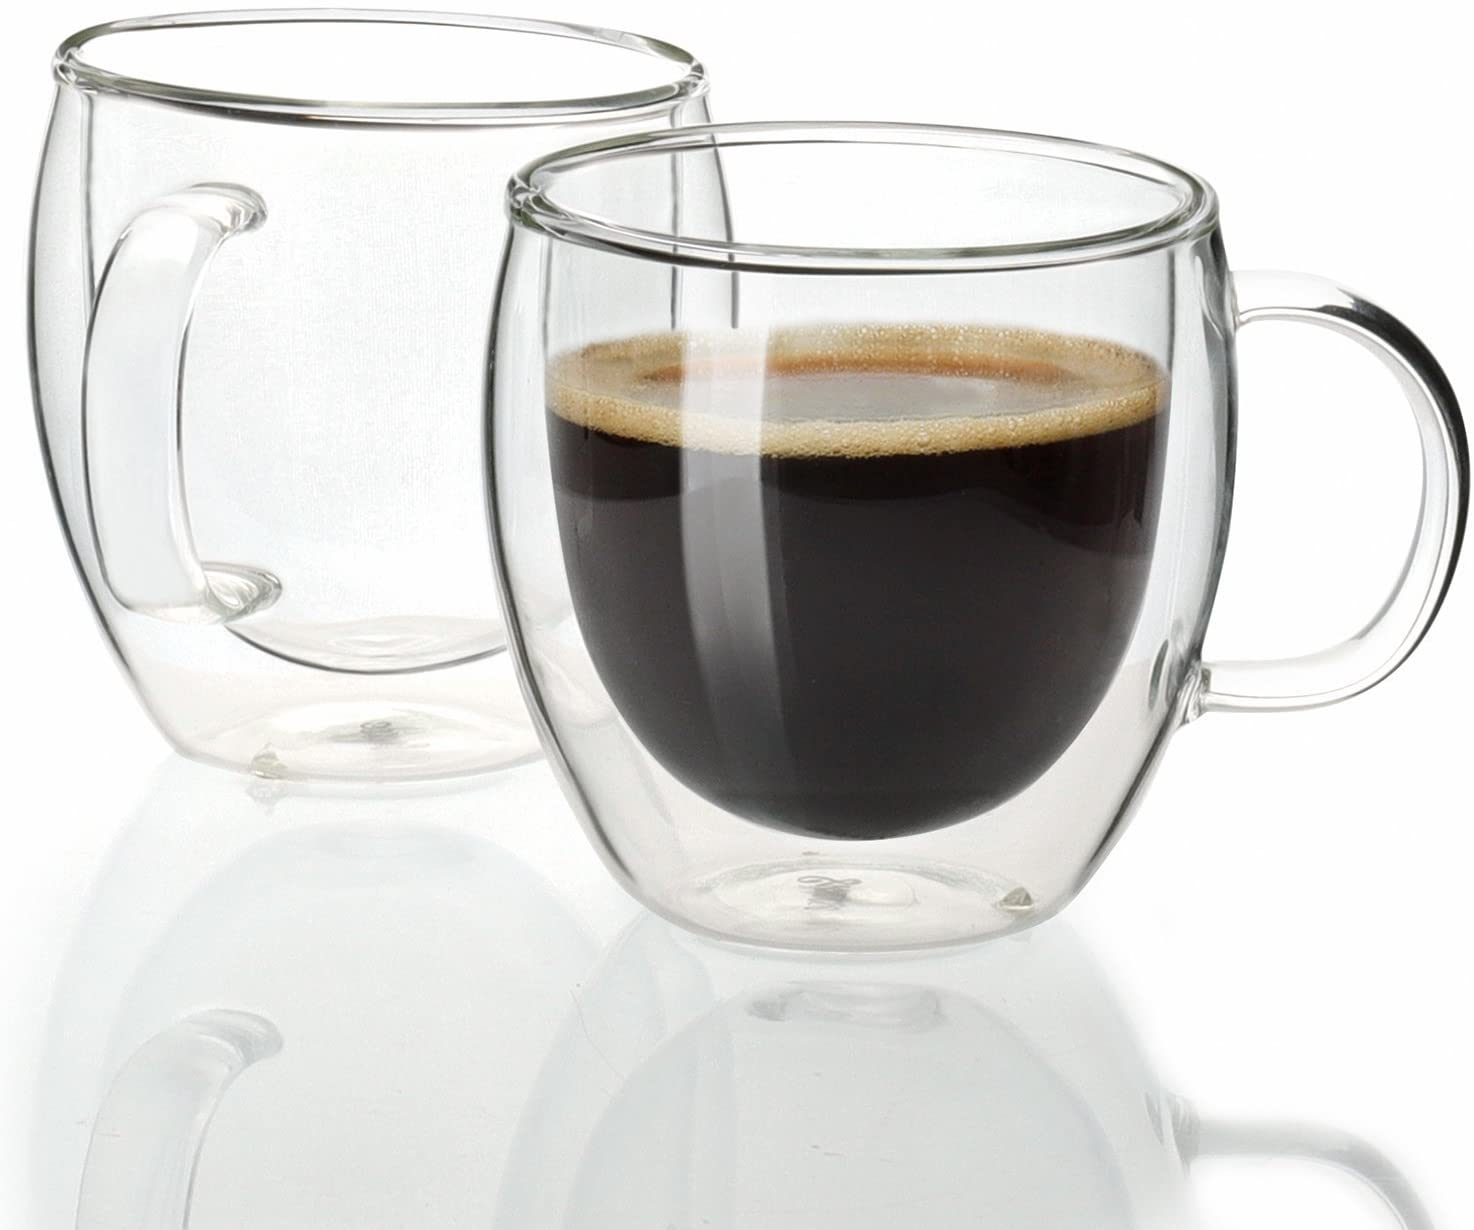 Sweese 412.101 Double-Wall Insulated Espresso Cups